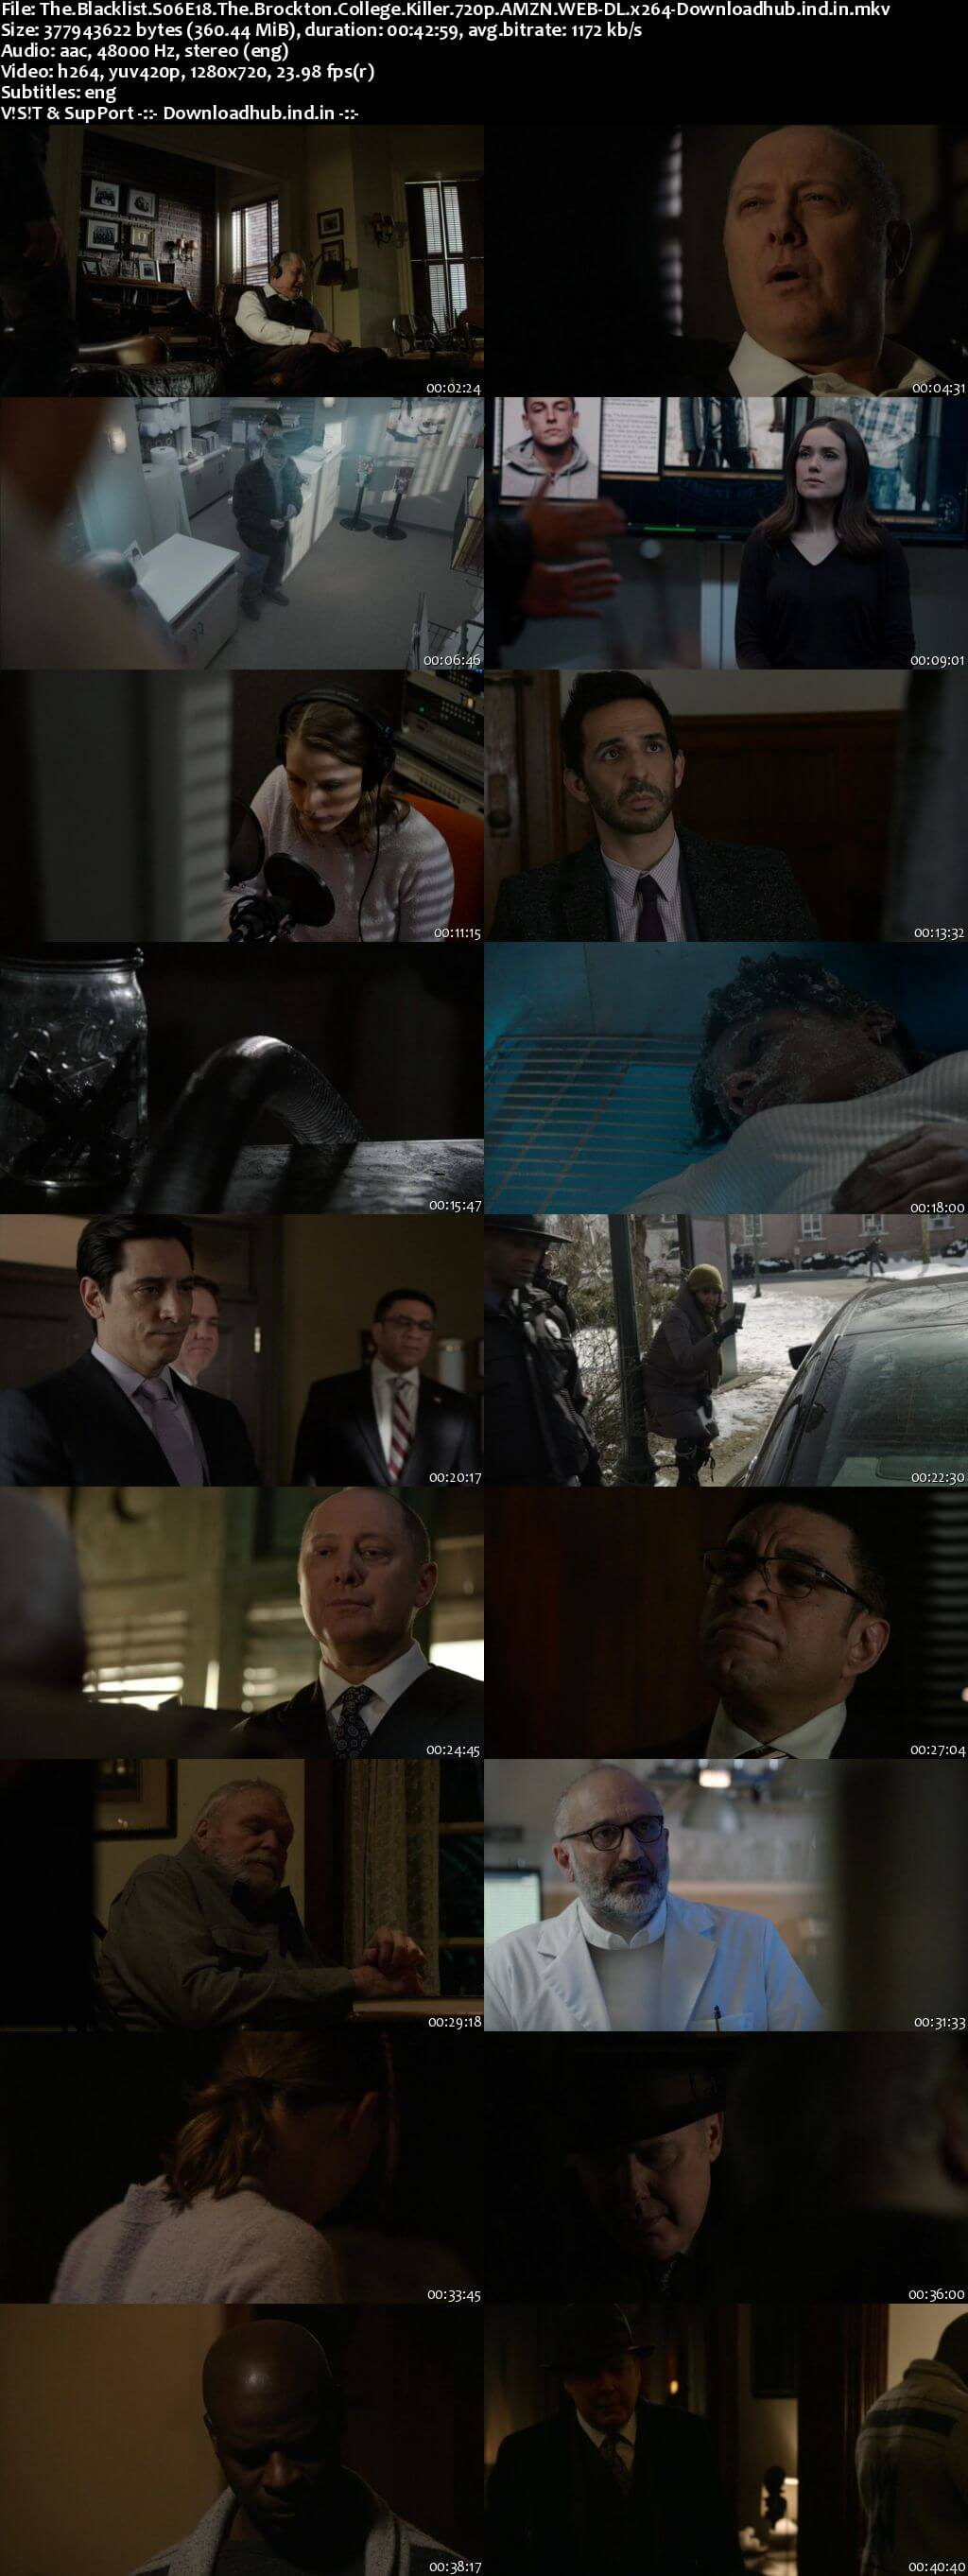 The Blacklist S06E18 350MB AMZN WEB-DL 720p ESubs